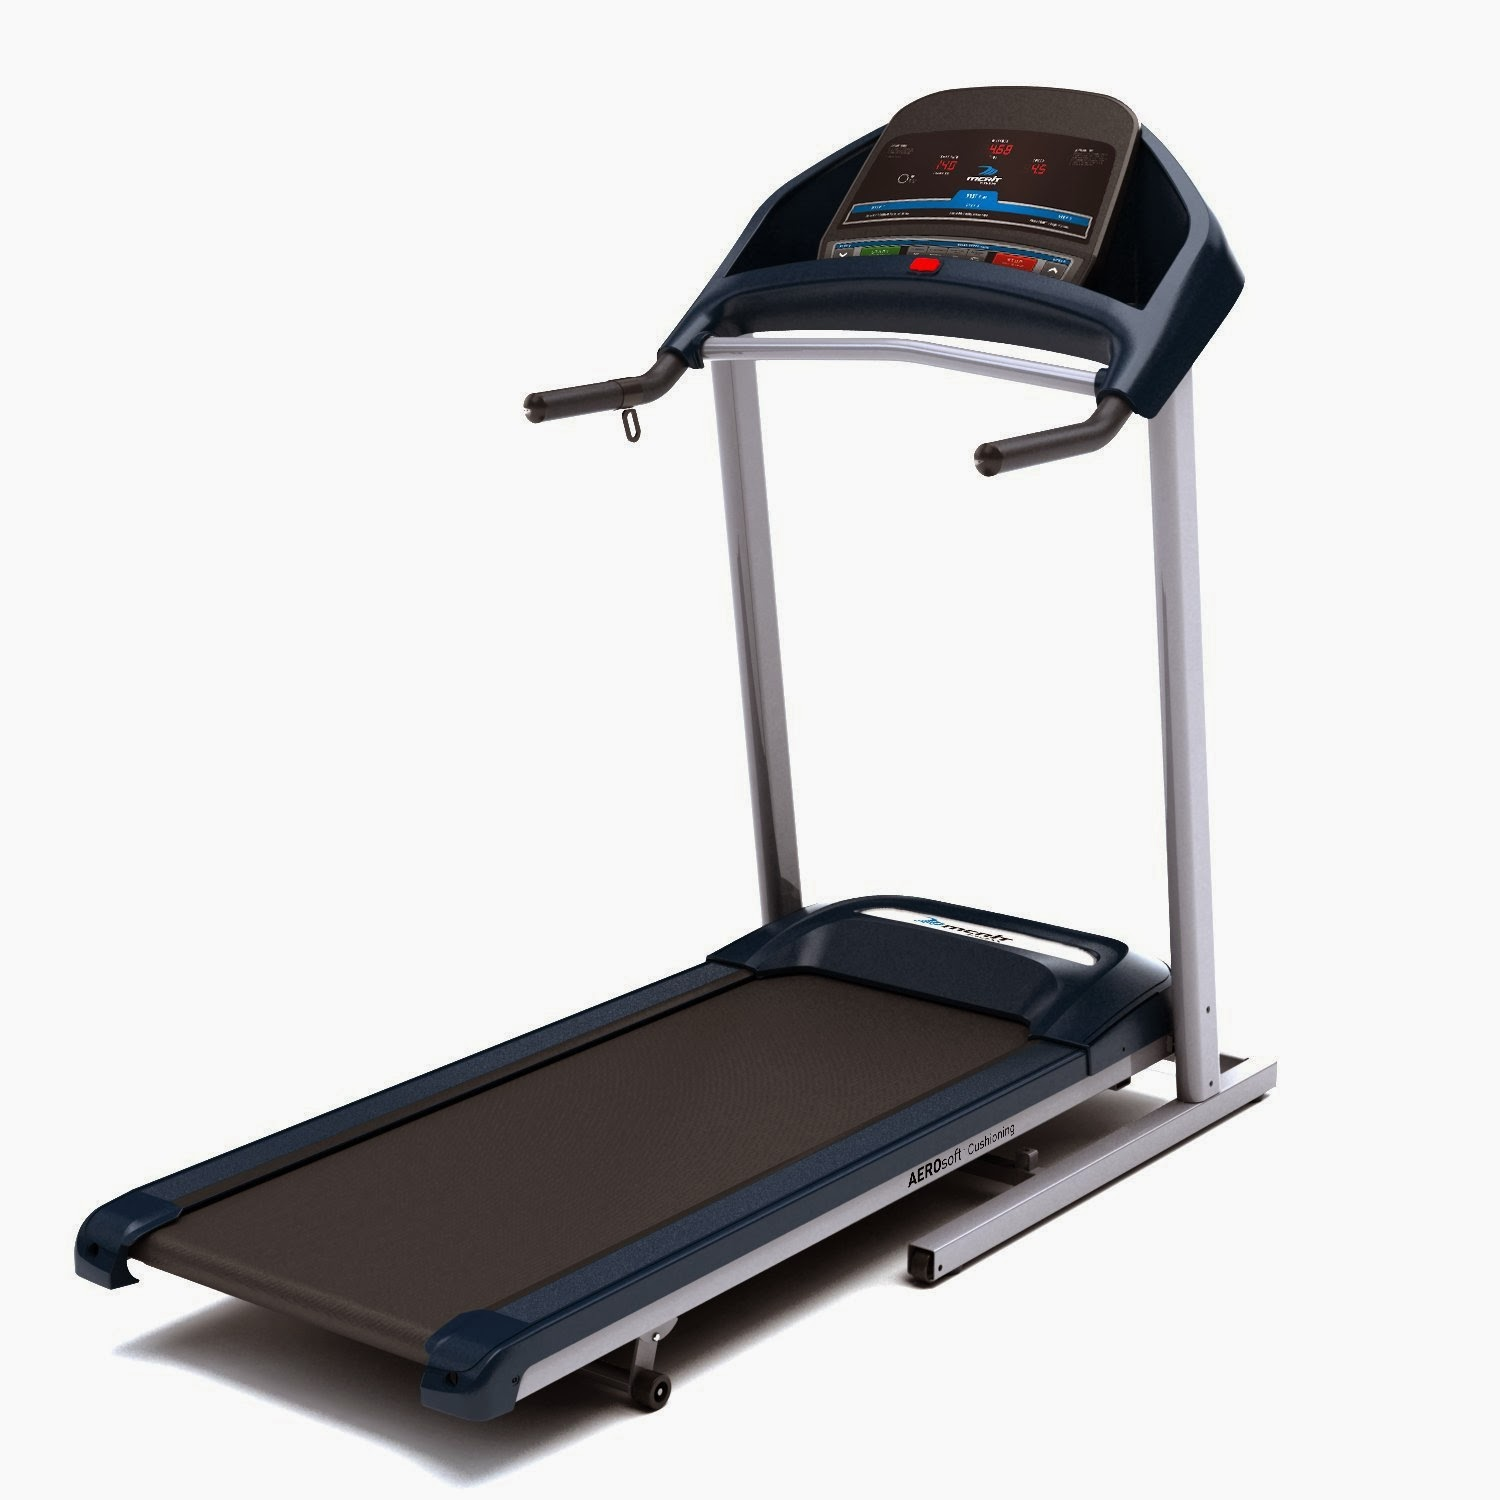 Merit Fitness 715T Plus Treadmill, picture, review features & specifications, compare with Merit Fitness 725T Plus Treadmill